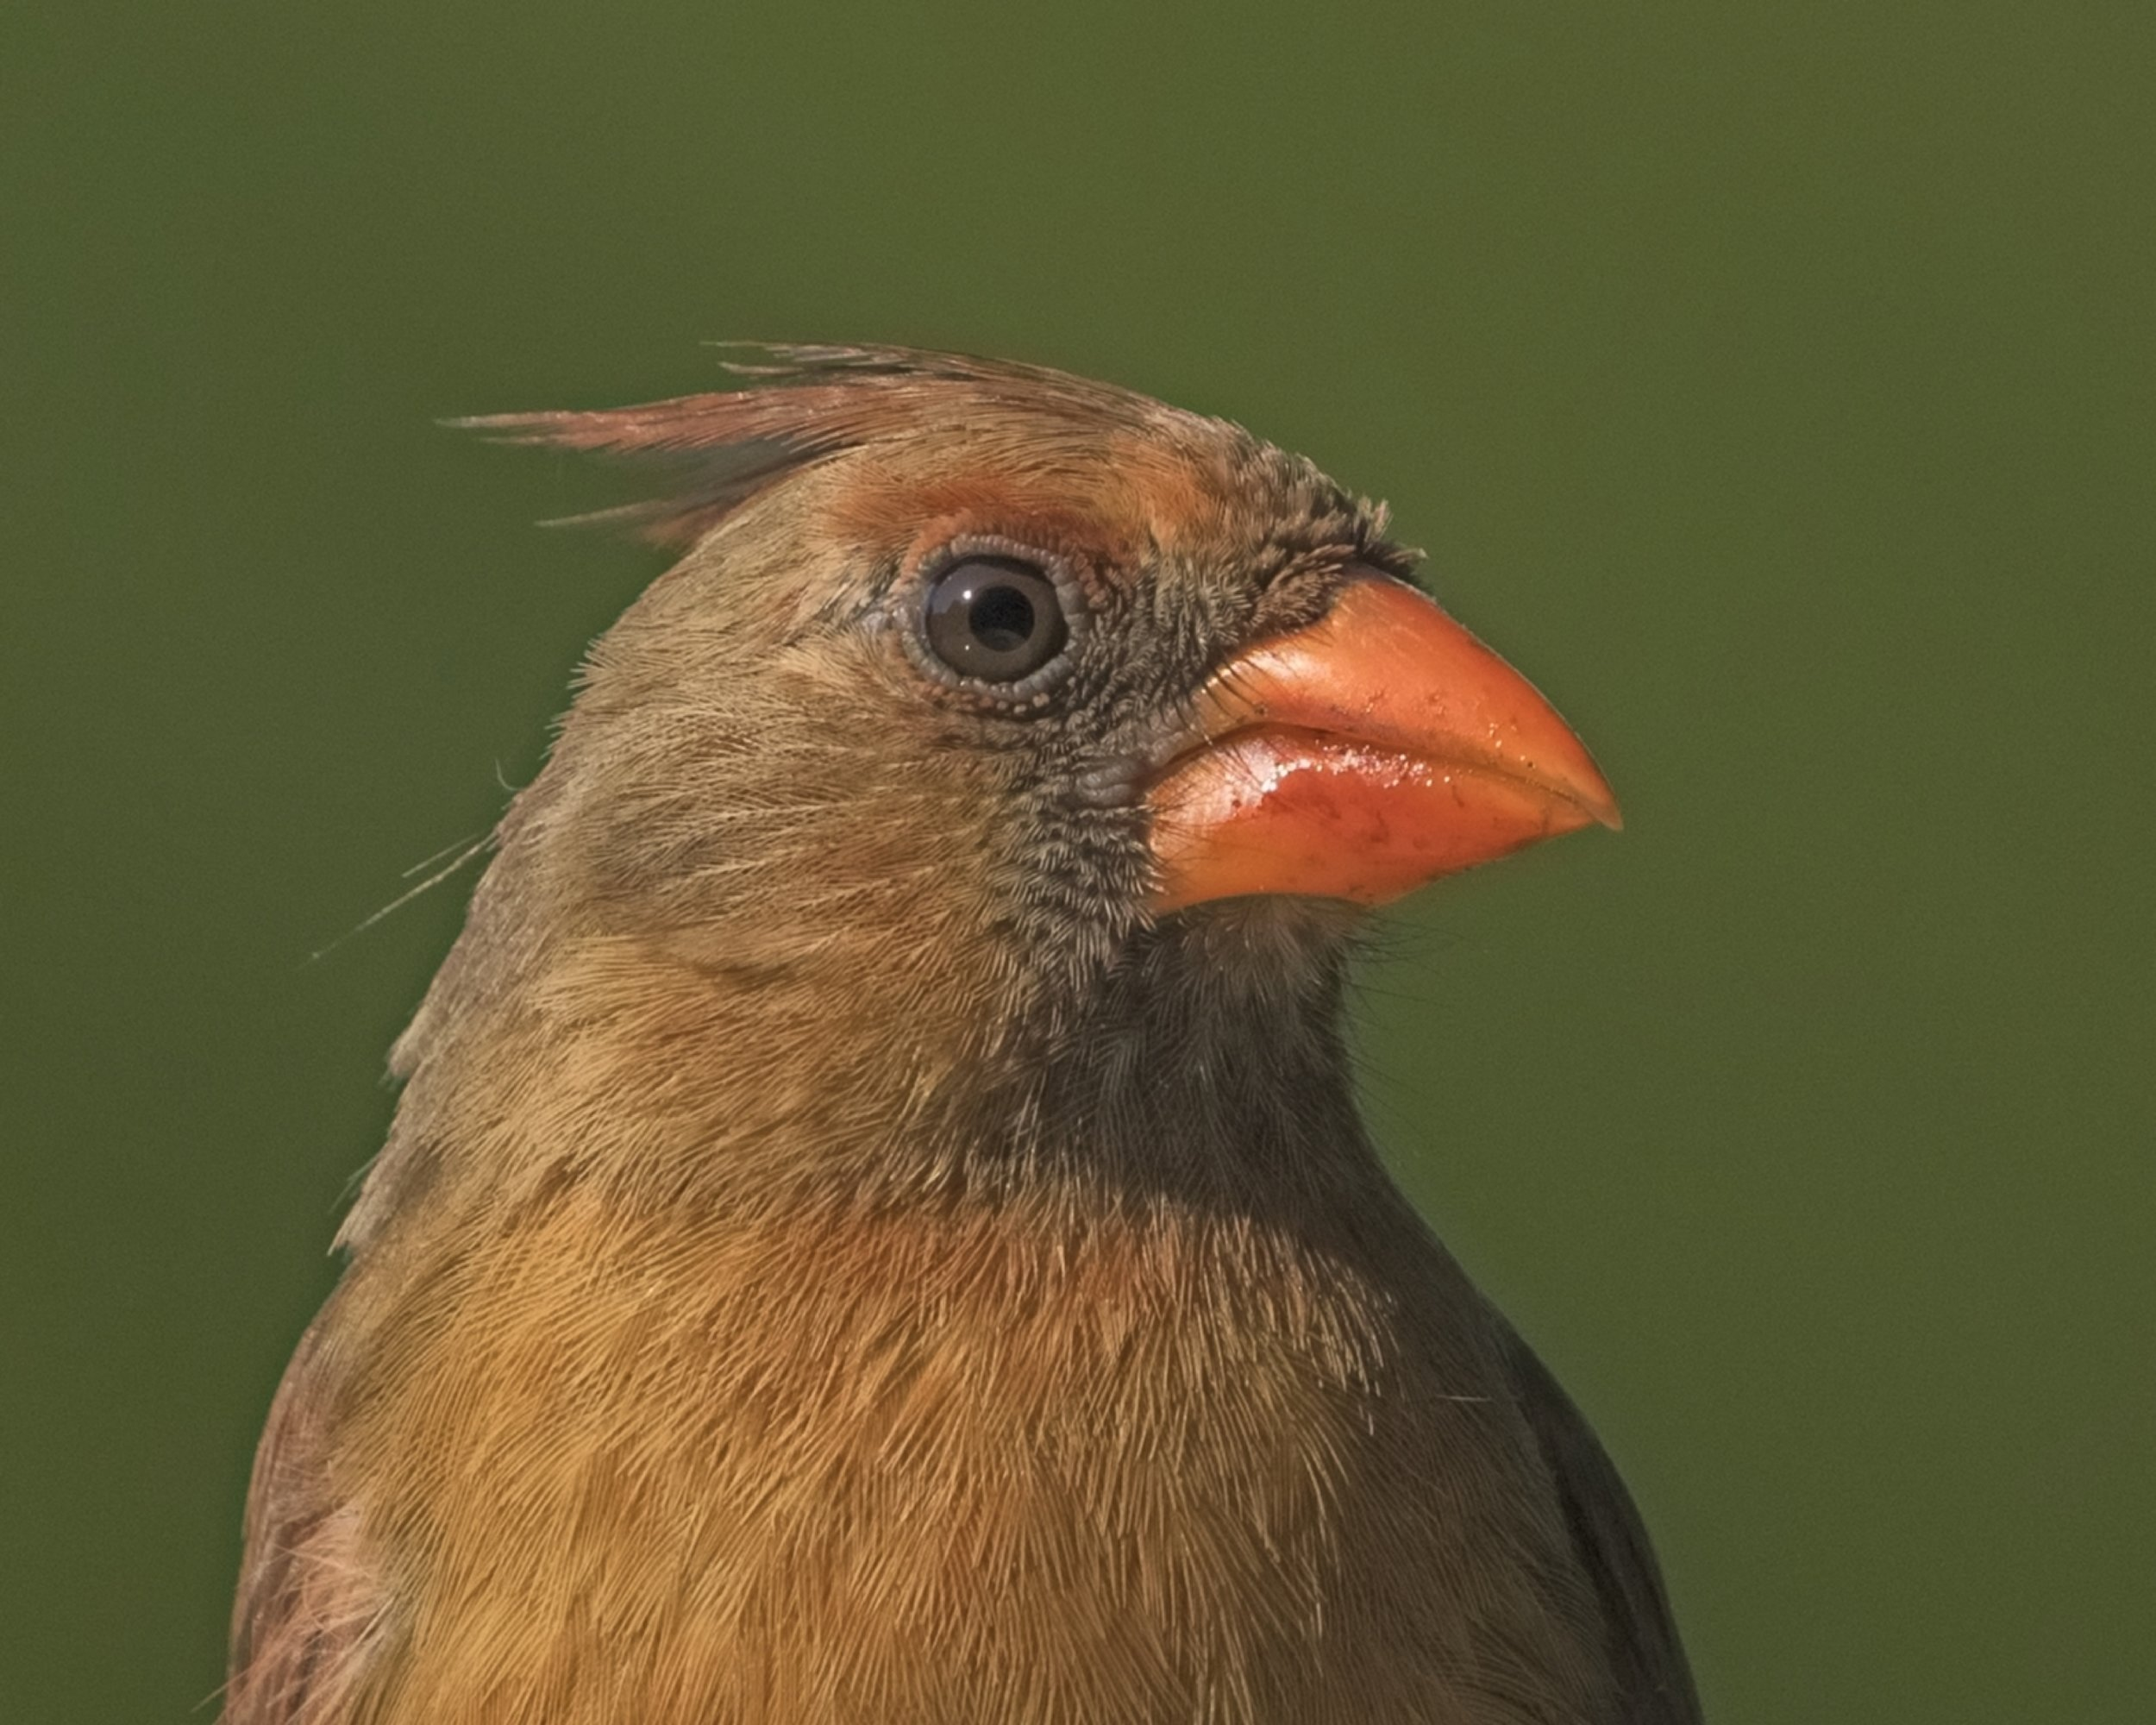 Female Red Cardinal,,note the intricate feather patterns